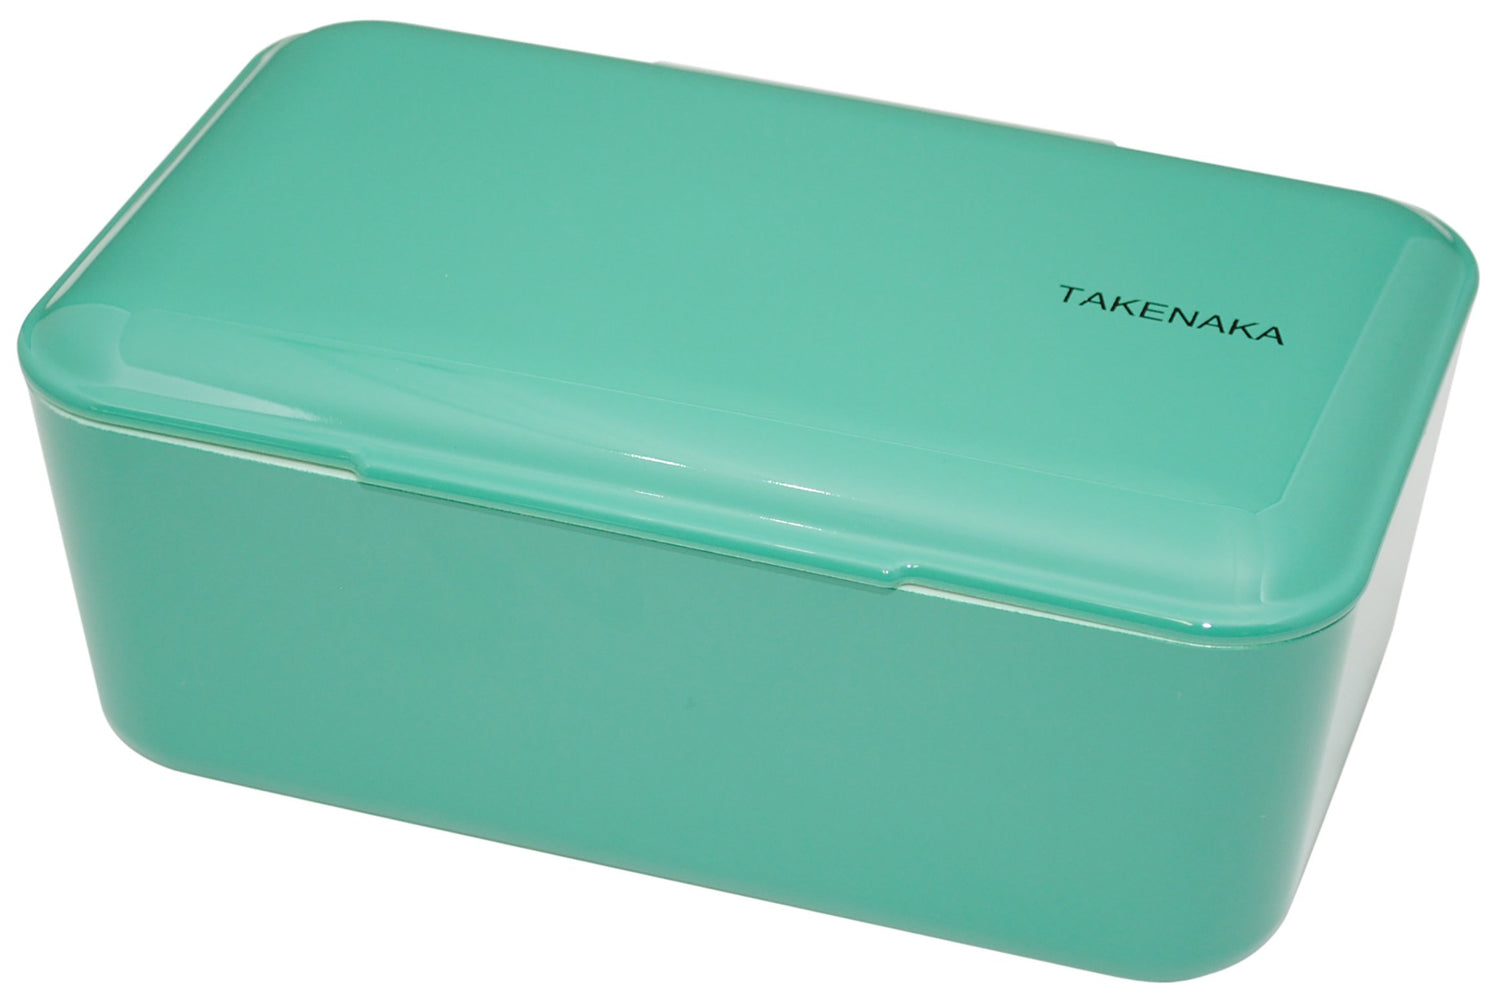 Expanded Bento Box | Emerald by Takenaka - Bento&con the Bento Boxes specialist from Kyoto